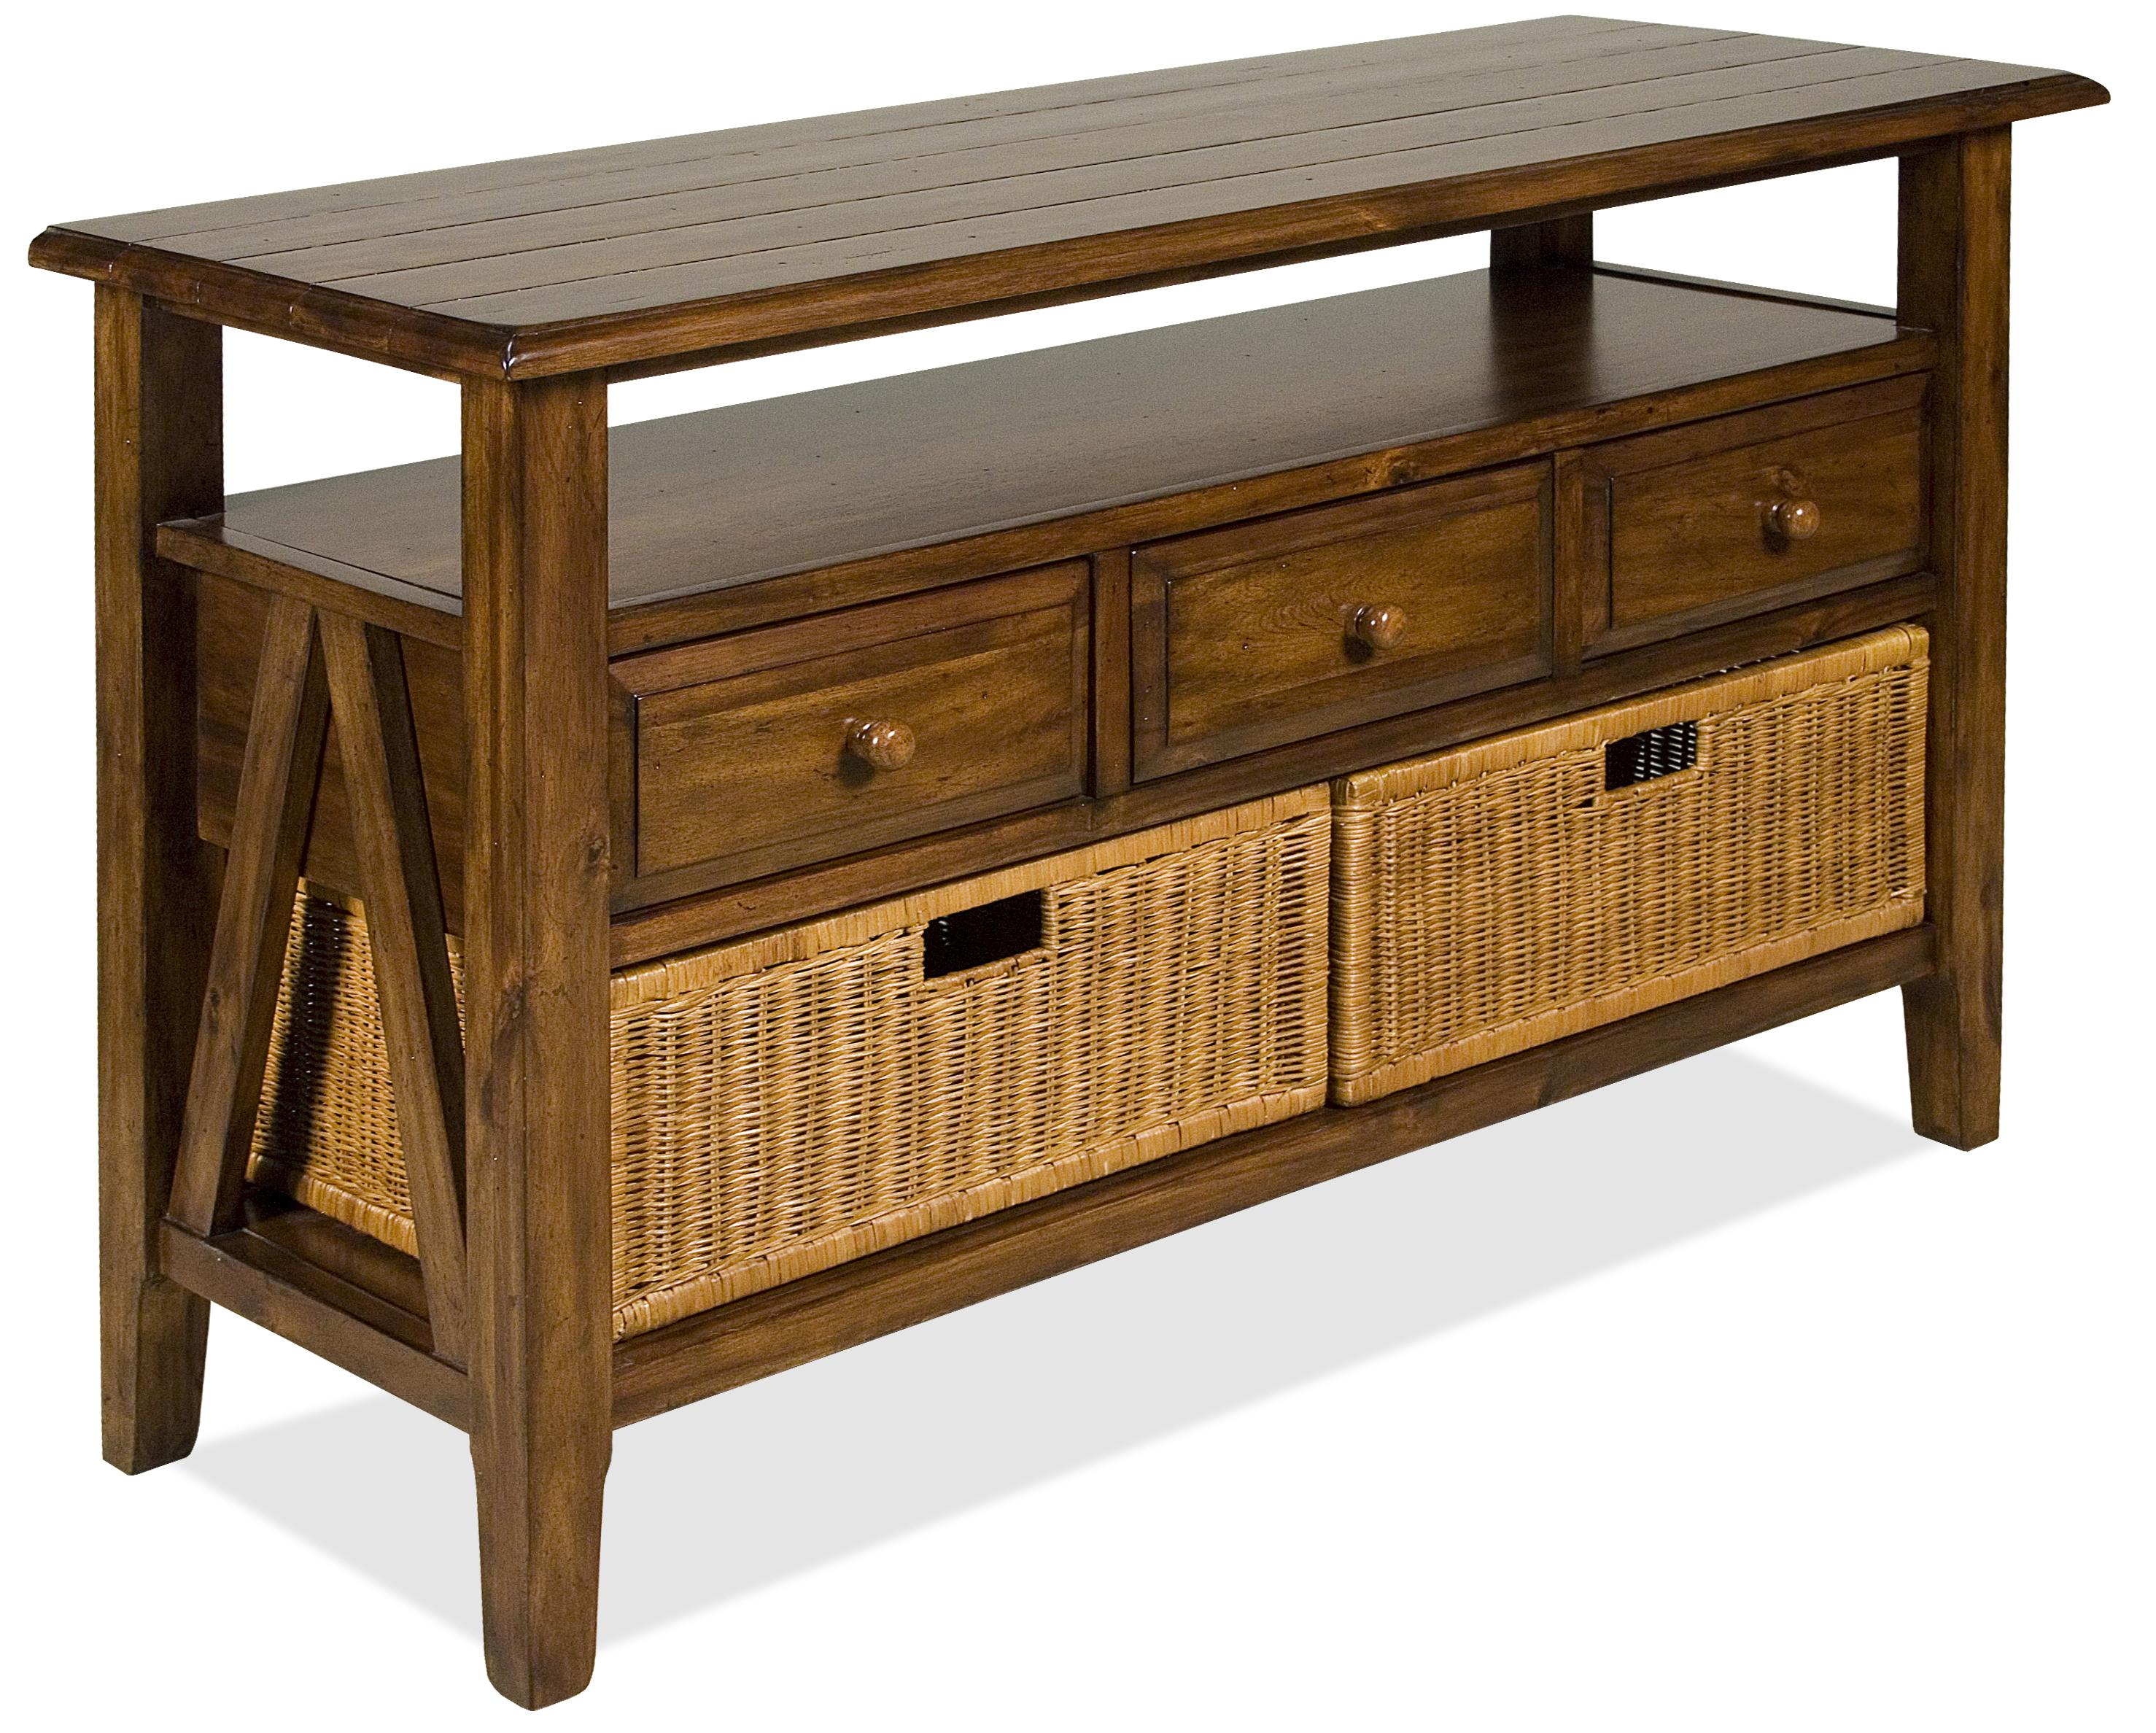 Riverside Furniture Claremont 3 Drawer Console Table with Storage Baskets - AHFA - TV or Computer Unit Dealer Locator  sc 1 st  Find Your Furniture & Riverside Furniture Claremont 3 Drawer Console Table with Storage ...